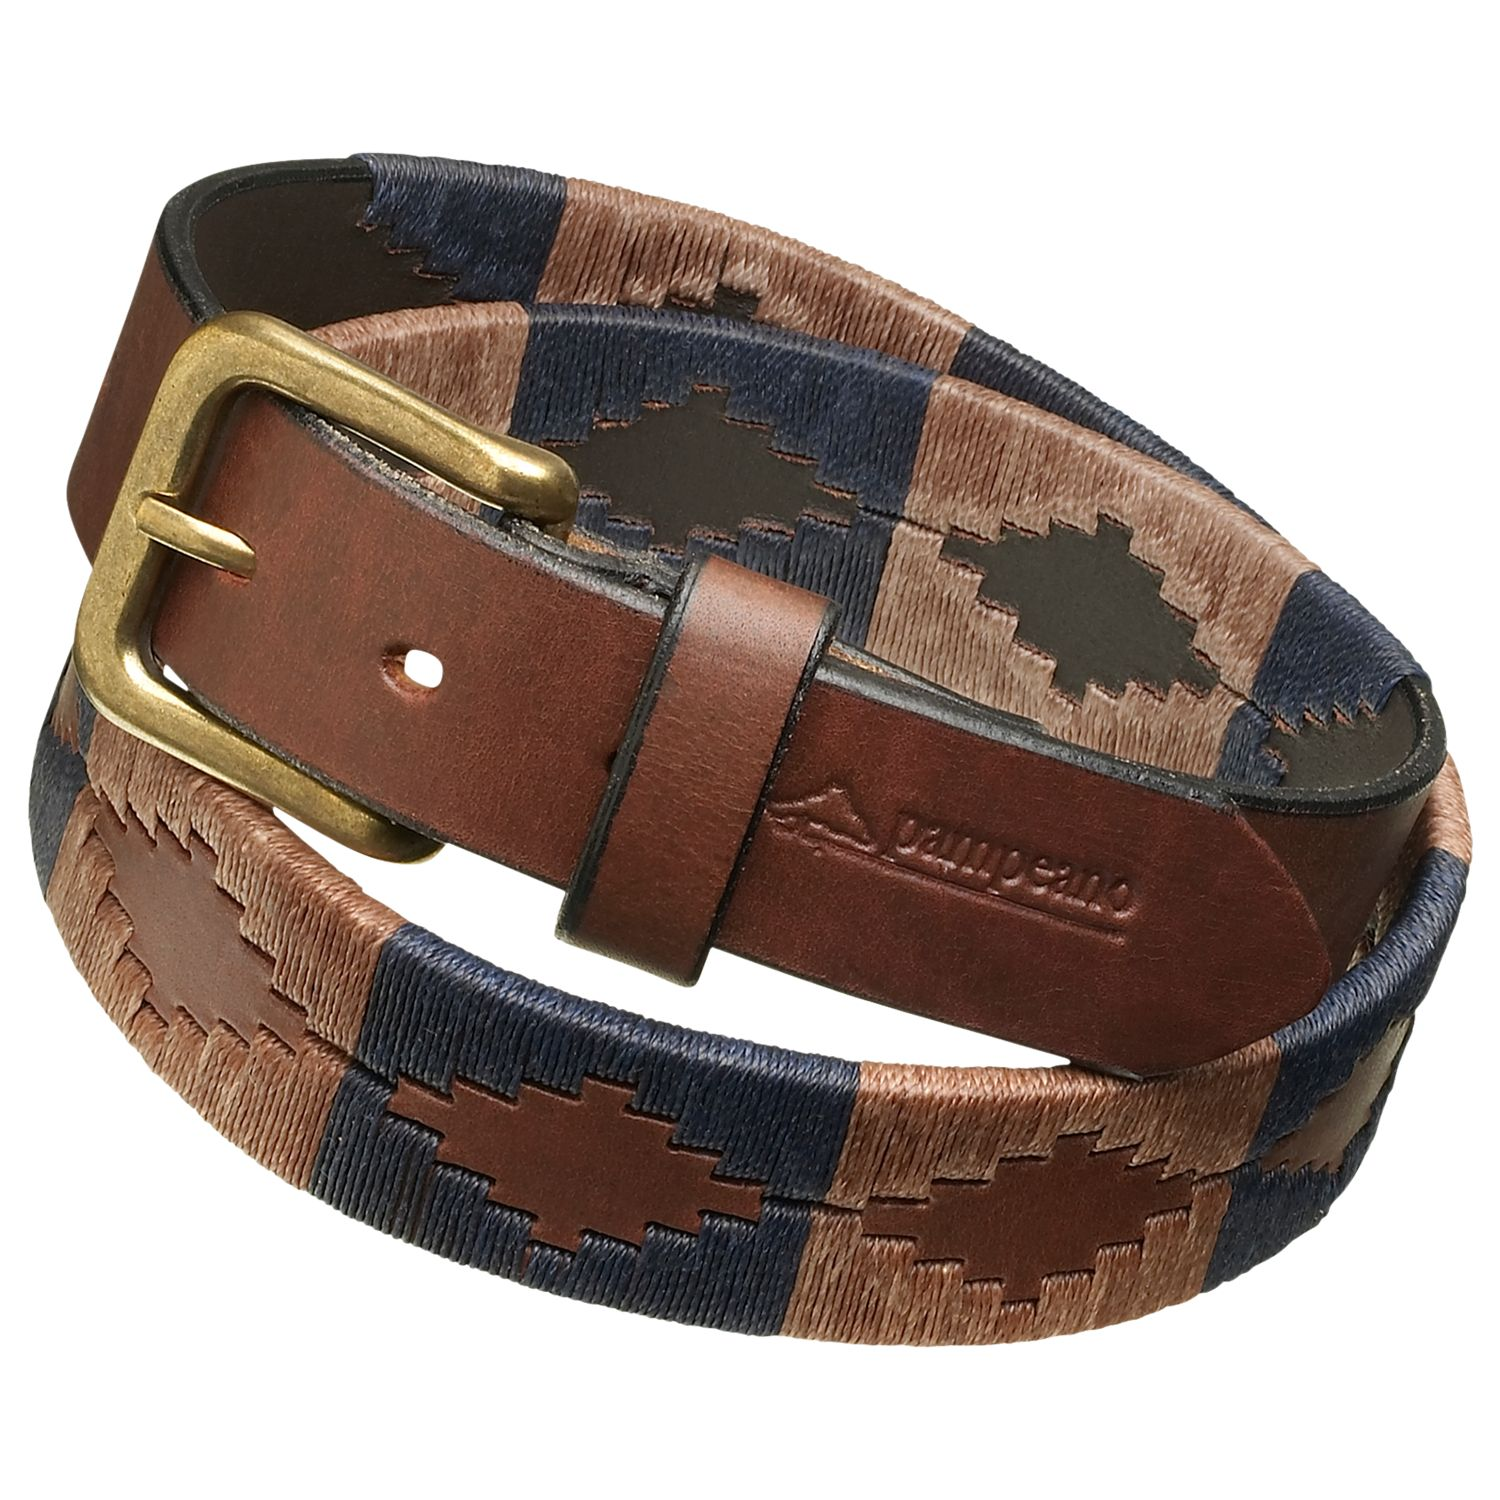 Pampeano pampeano Leather Polo Belt, Jefe